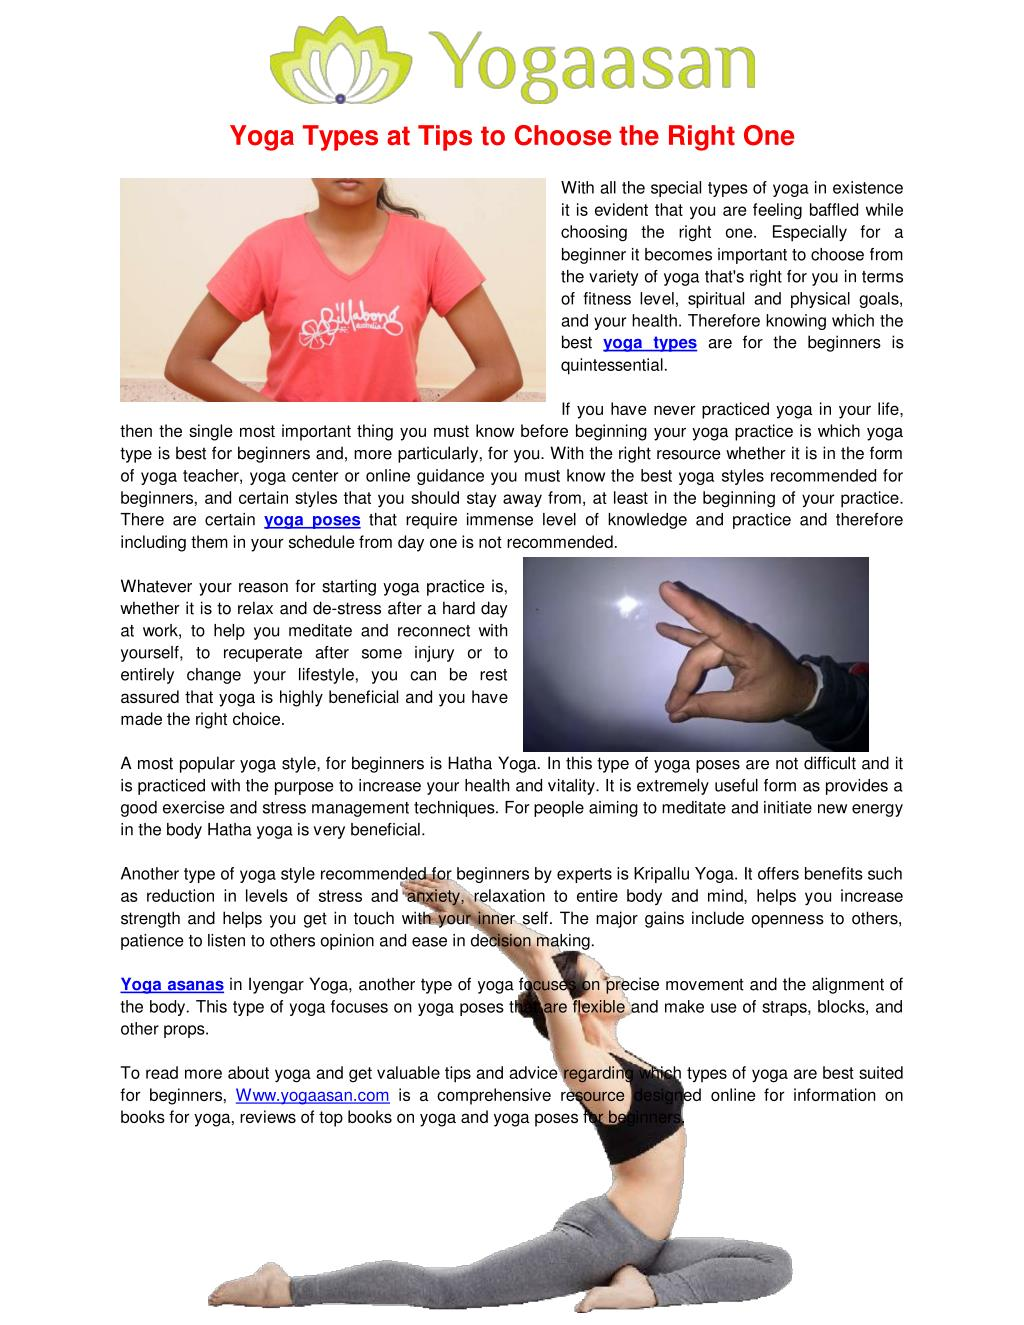 Ppt Yoga Poses Powerpoint Presentation Free Download Id 7431885